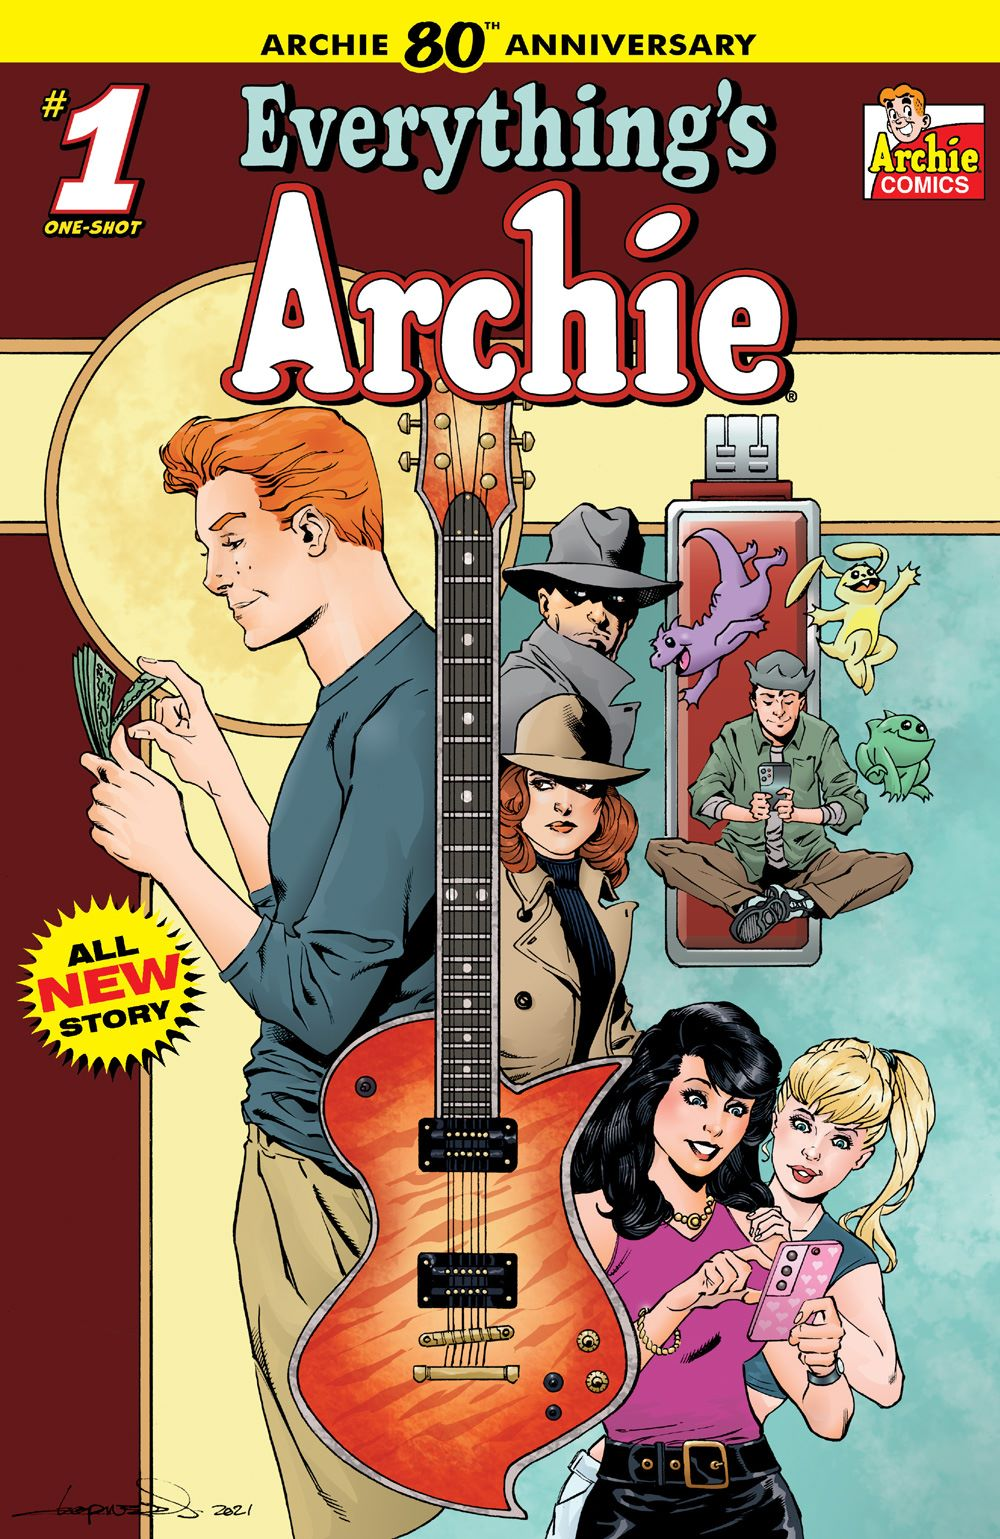 EverythingsArchie_01_CoverD_Lopresti ComicList Previews: ARCHIE 80TH ANNIVERSARY EVERYTHING'S ARCHIE #1